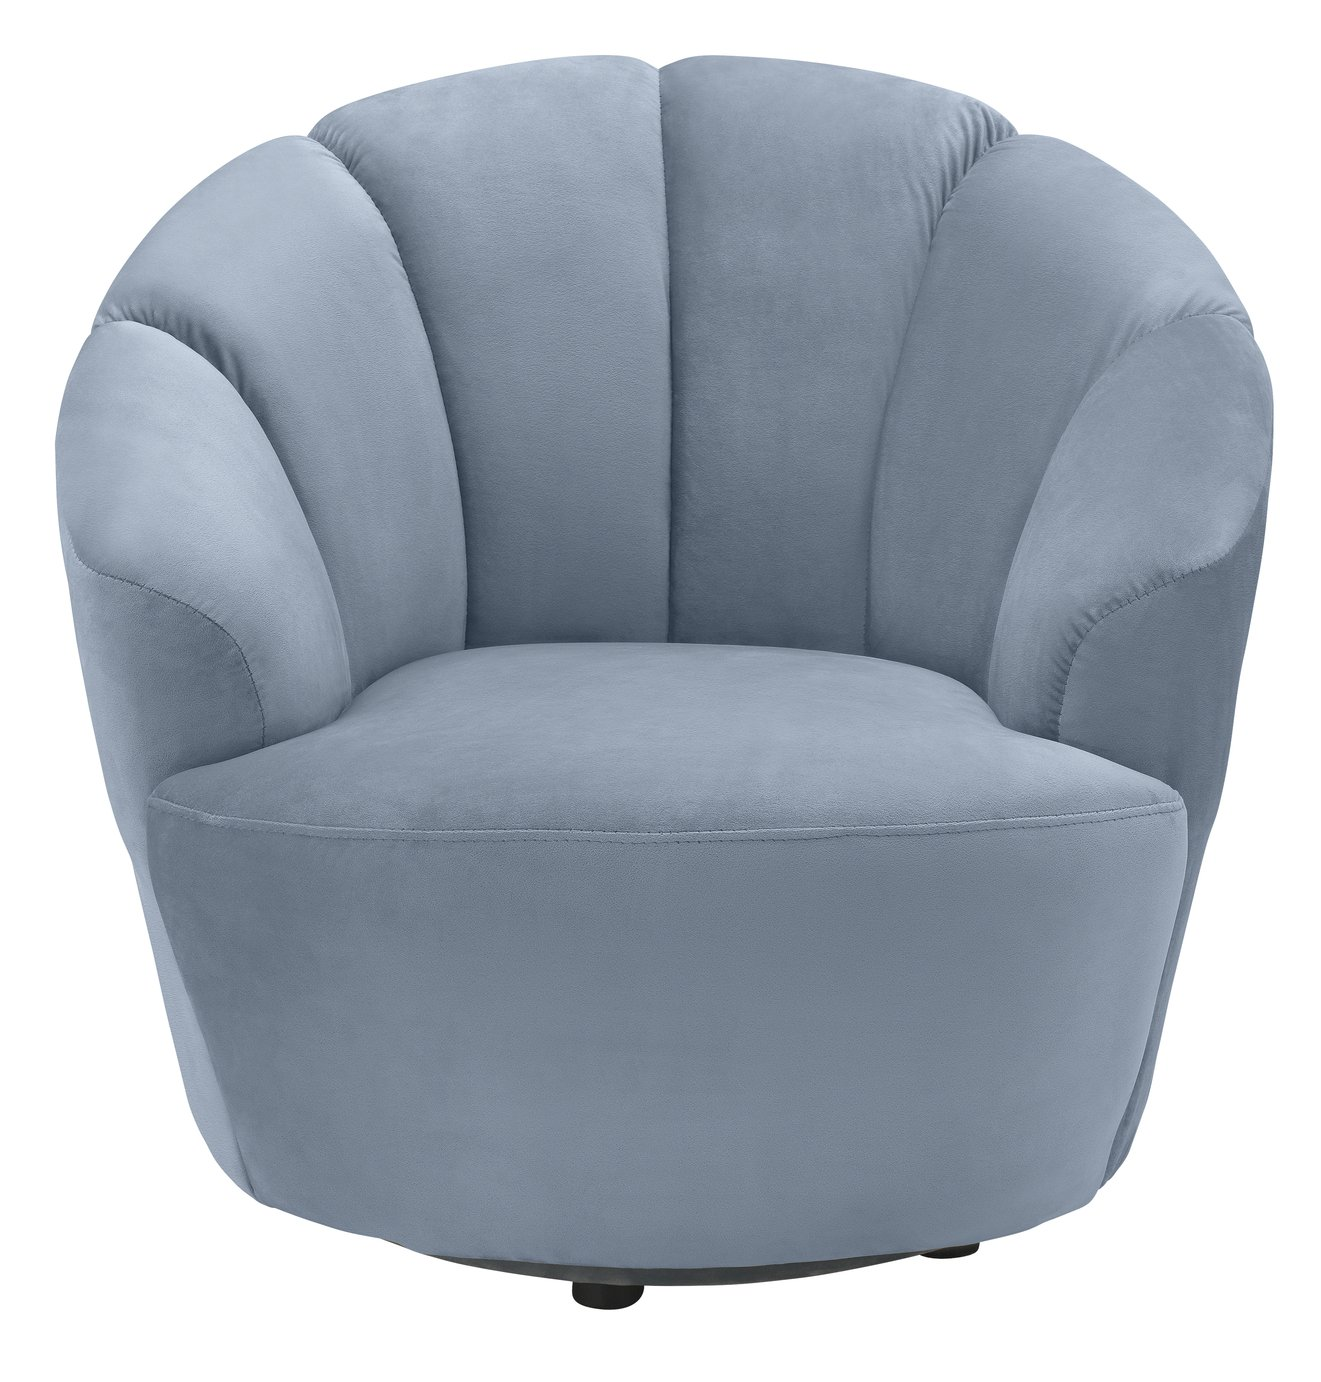 Argos Home Ezra Velvet Swival Chair - Light Blue